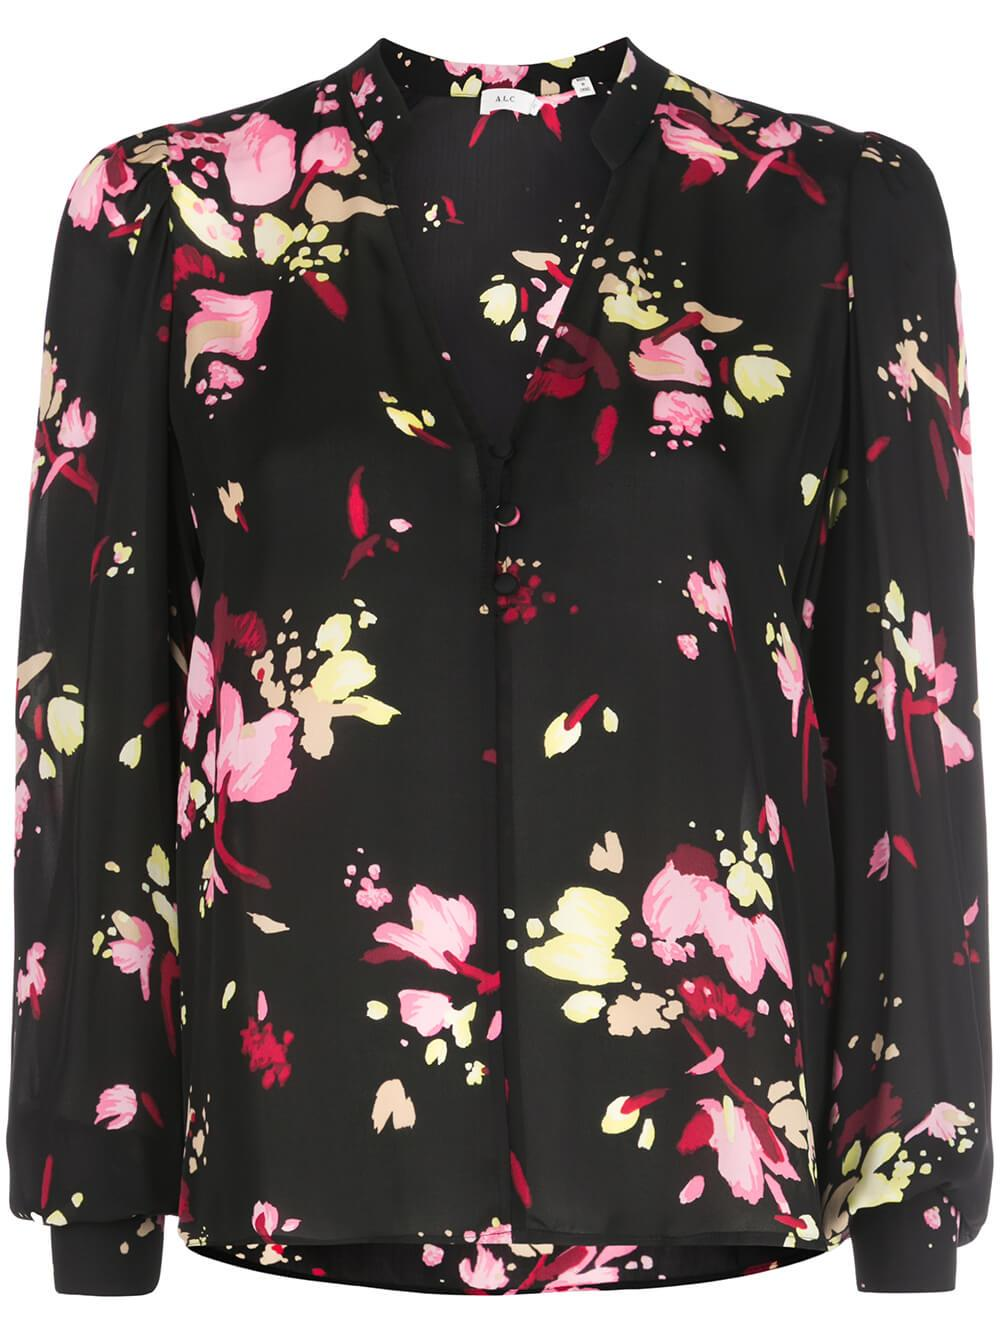 Rivera Floral Print Top